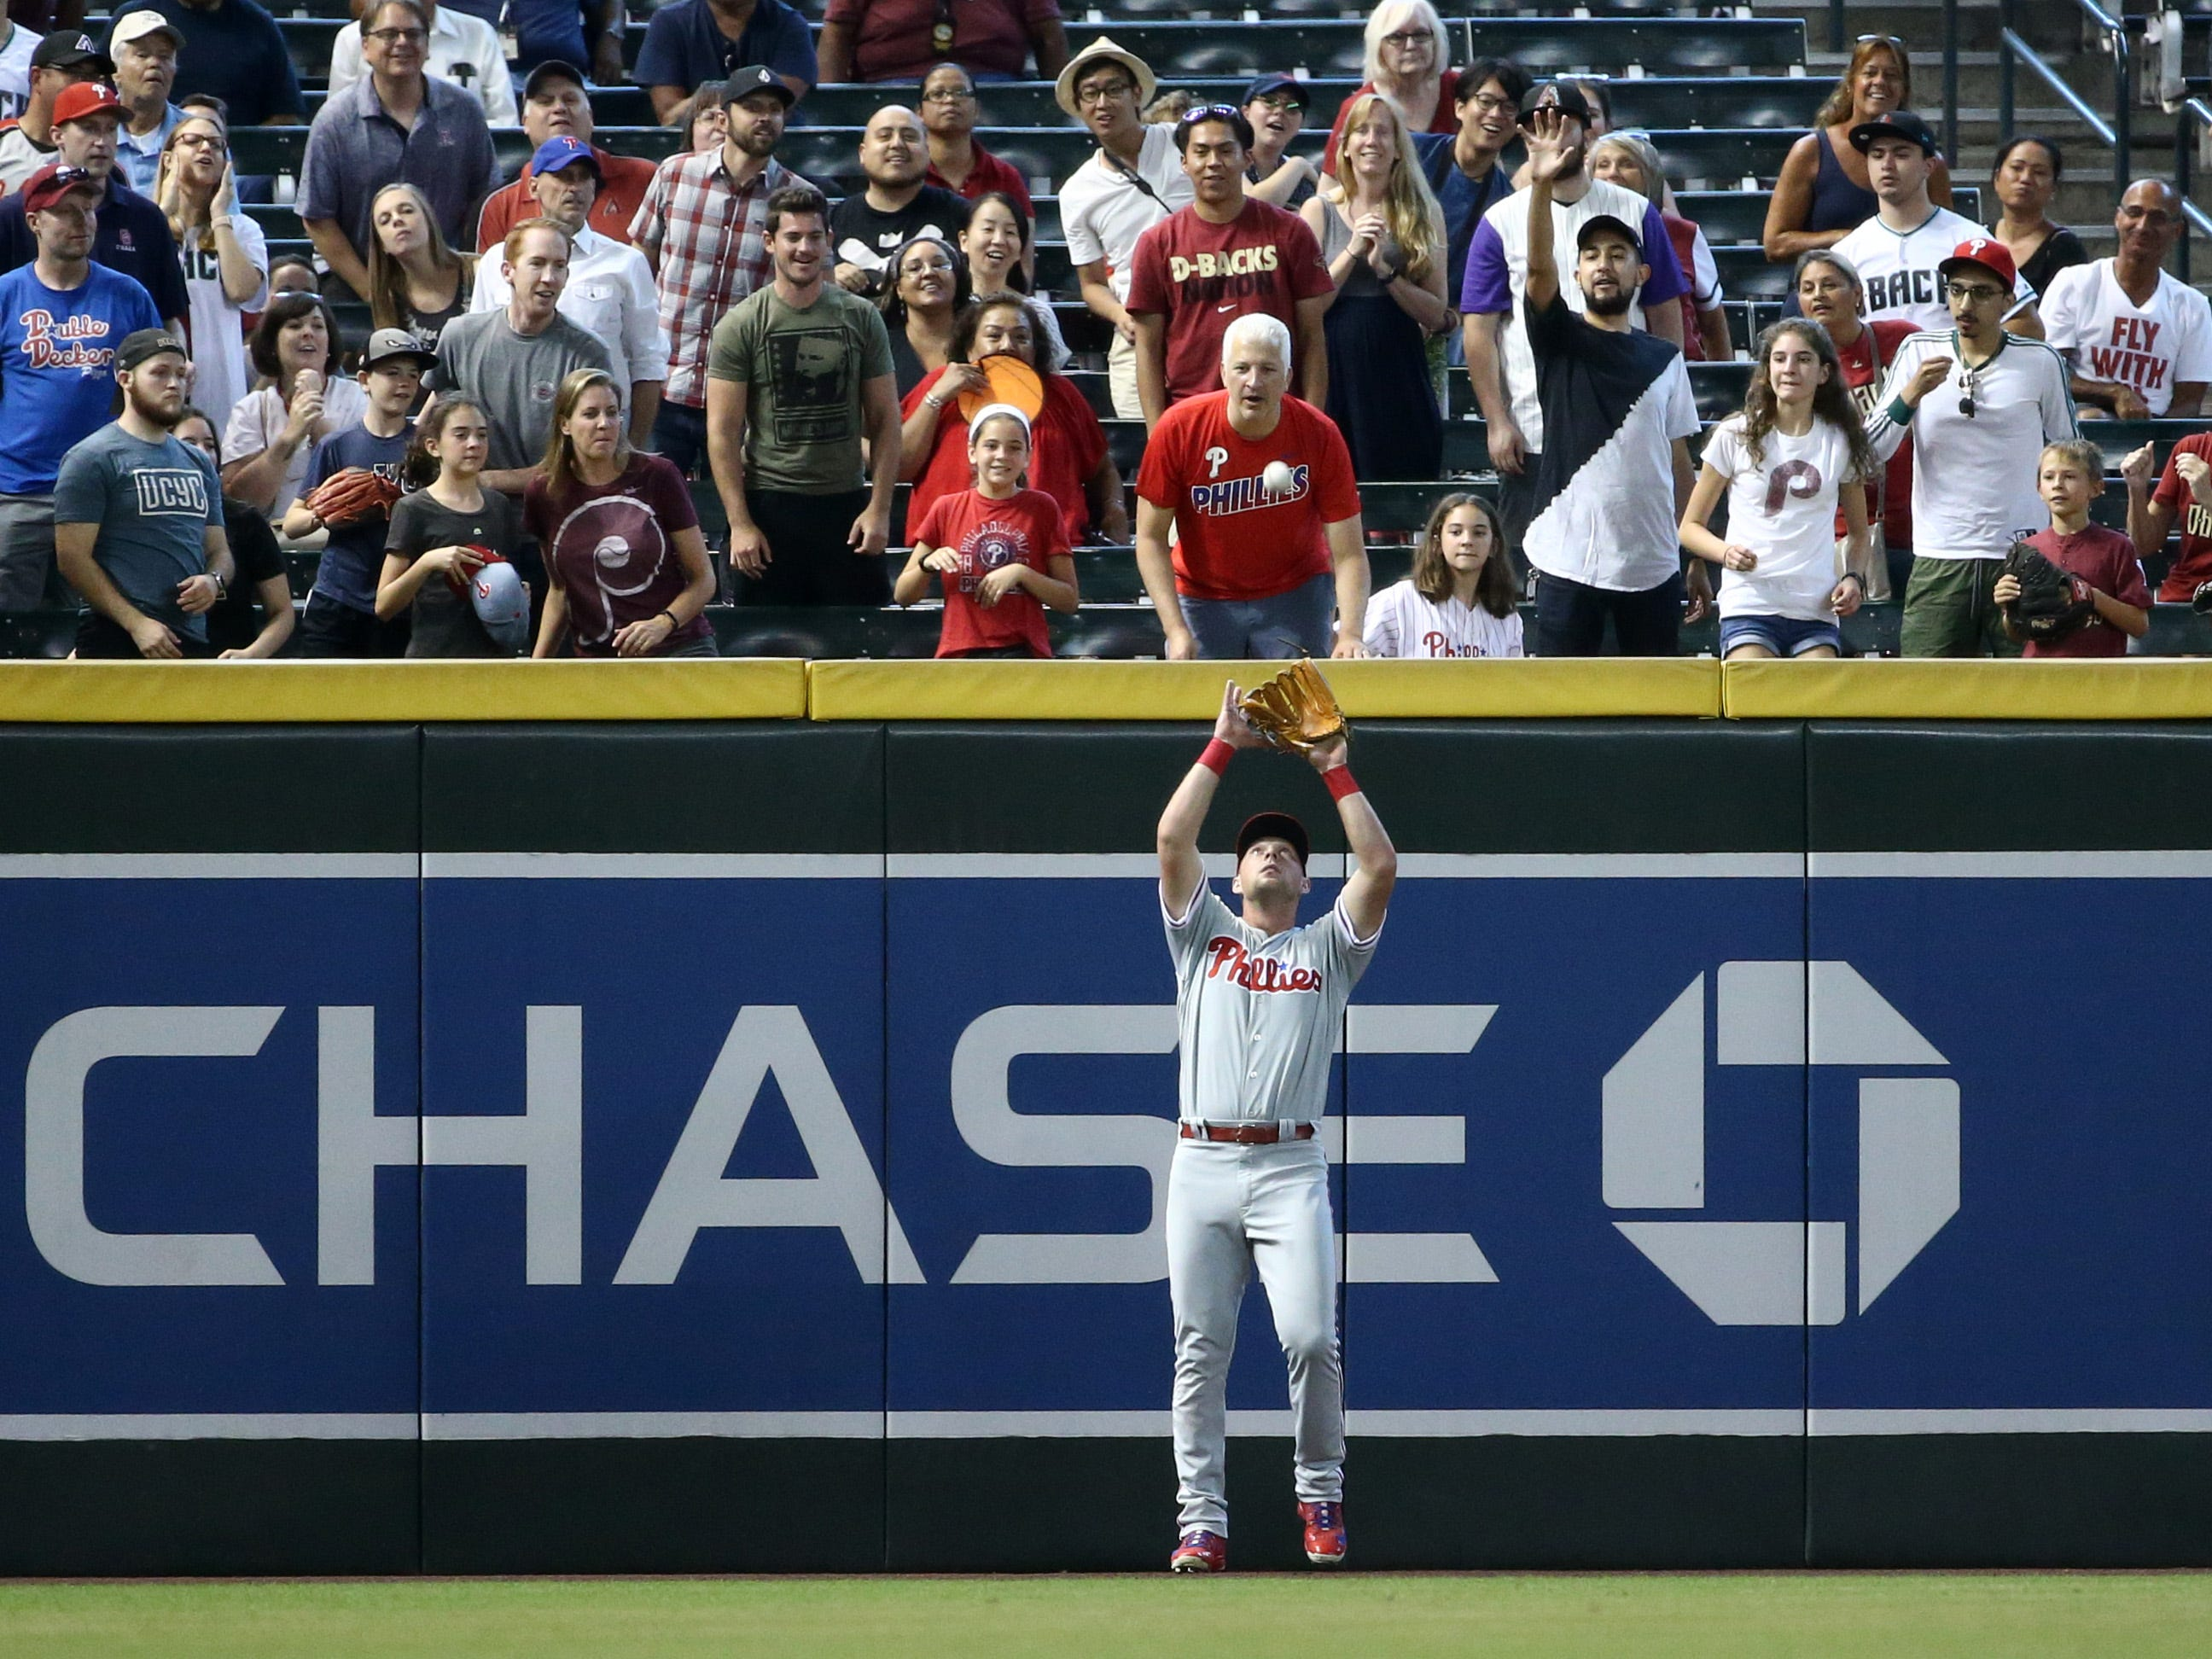 Arizona Diamondbacks A.J. Pollock flies out to Philadelphia Phillies left fielder Rhys Hoskins in the first inning on Aug. 8, 2018, at Chase Field in Phoenix, Ariz.